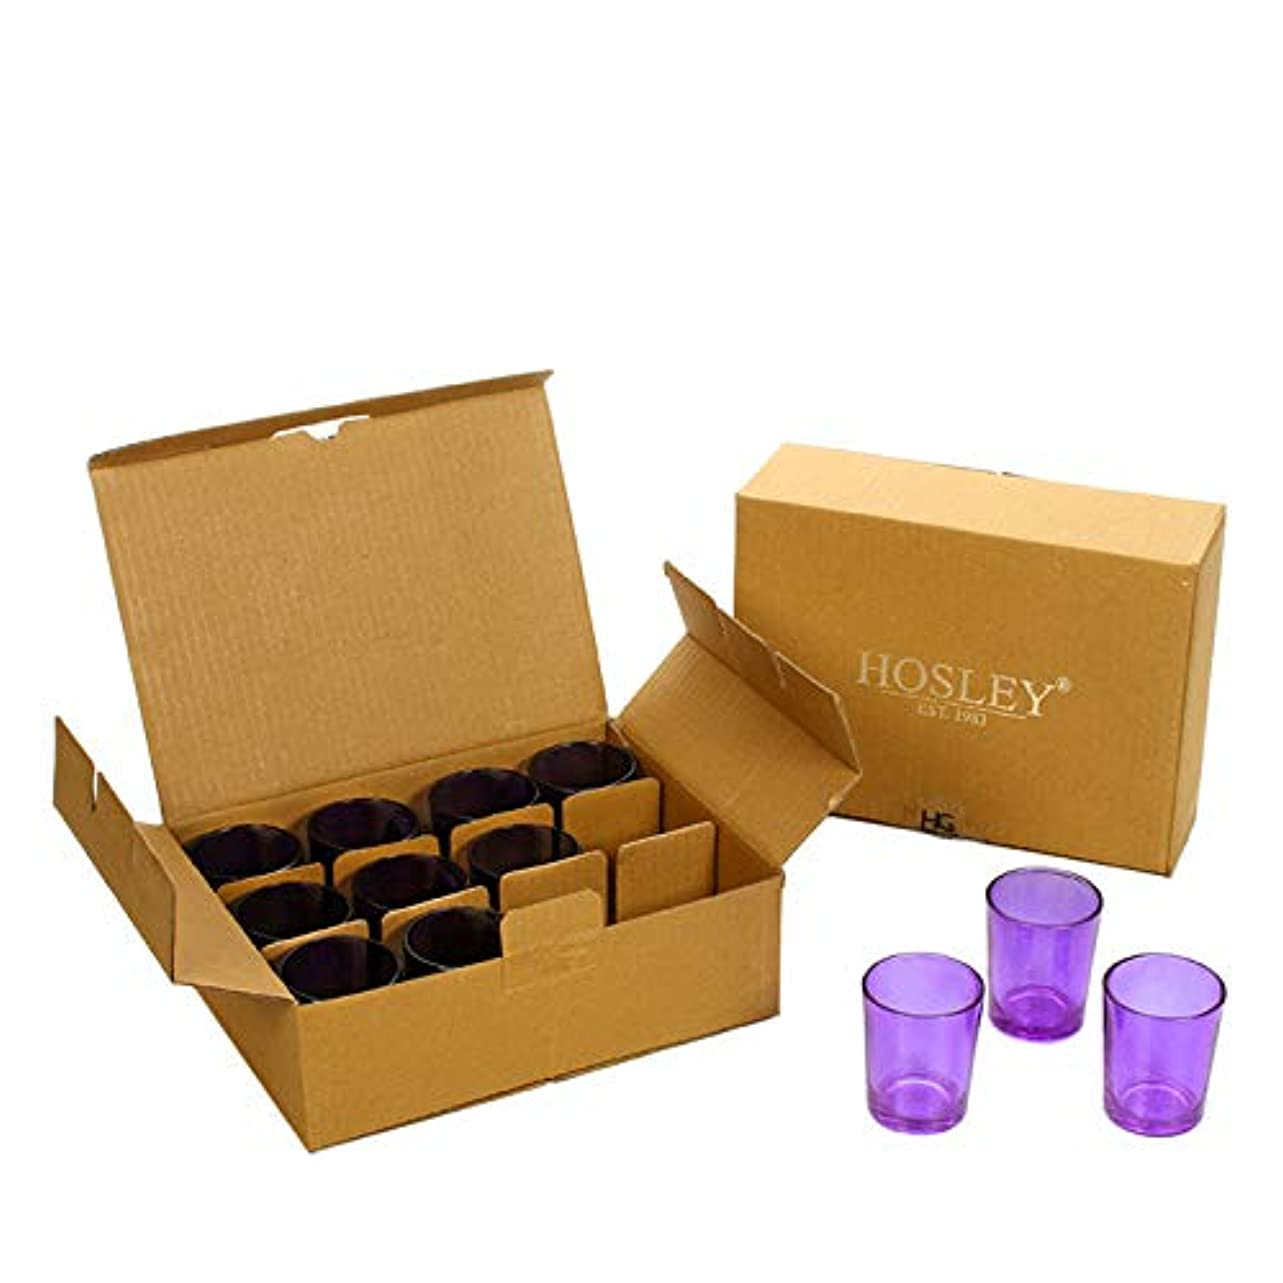 電信図マーカーHosley's Set of 24 Purple Glass Votive/Tea Light Holders. Ideal for Weddings, Parties, Spa & Aromatherapy, Votive Candle Gardens. Use with Hosley Tea Lights, Bulk Buy